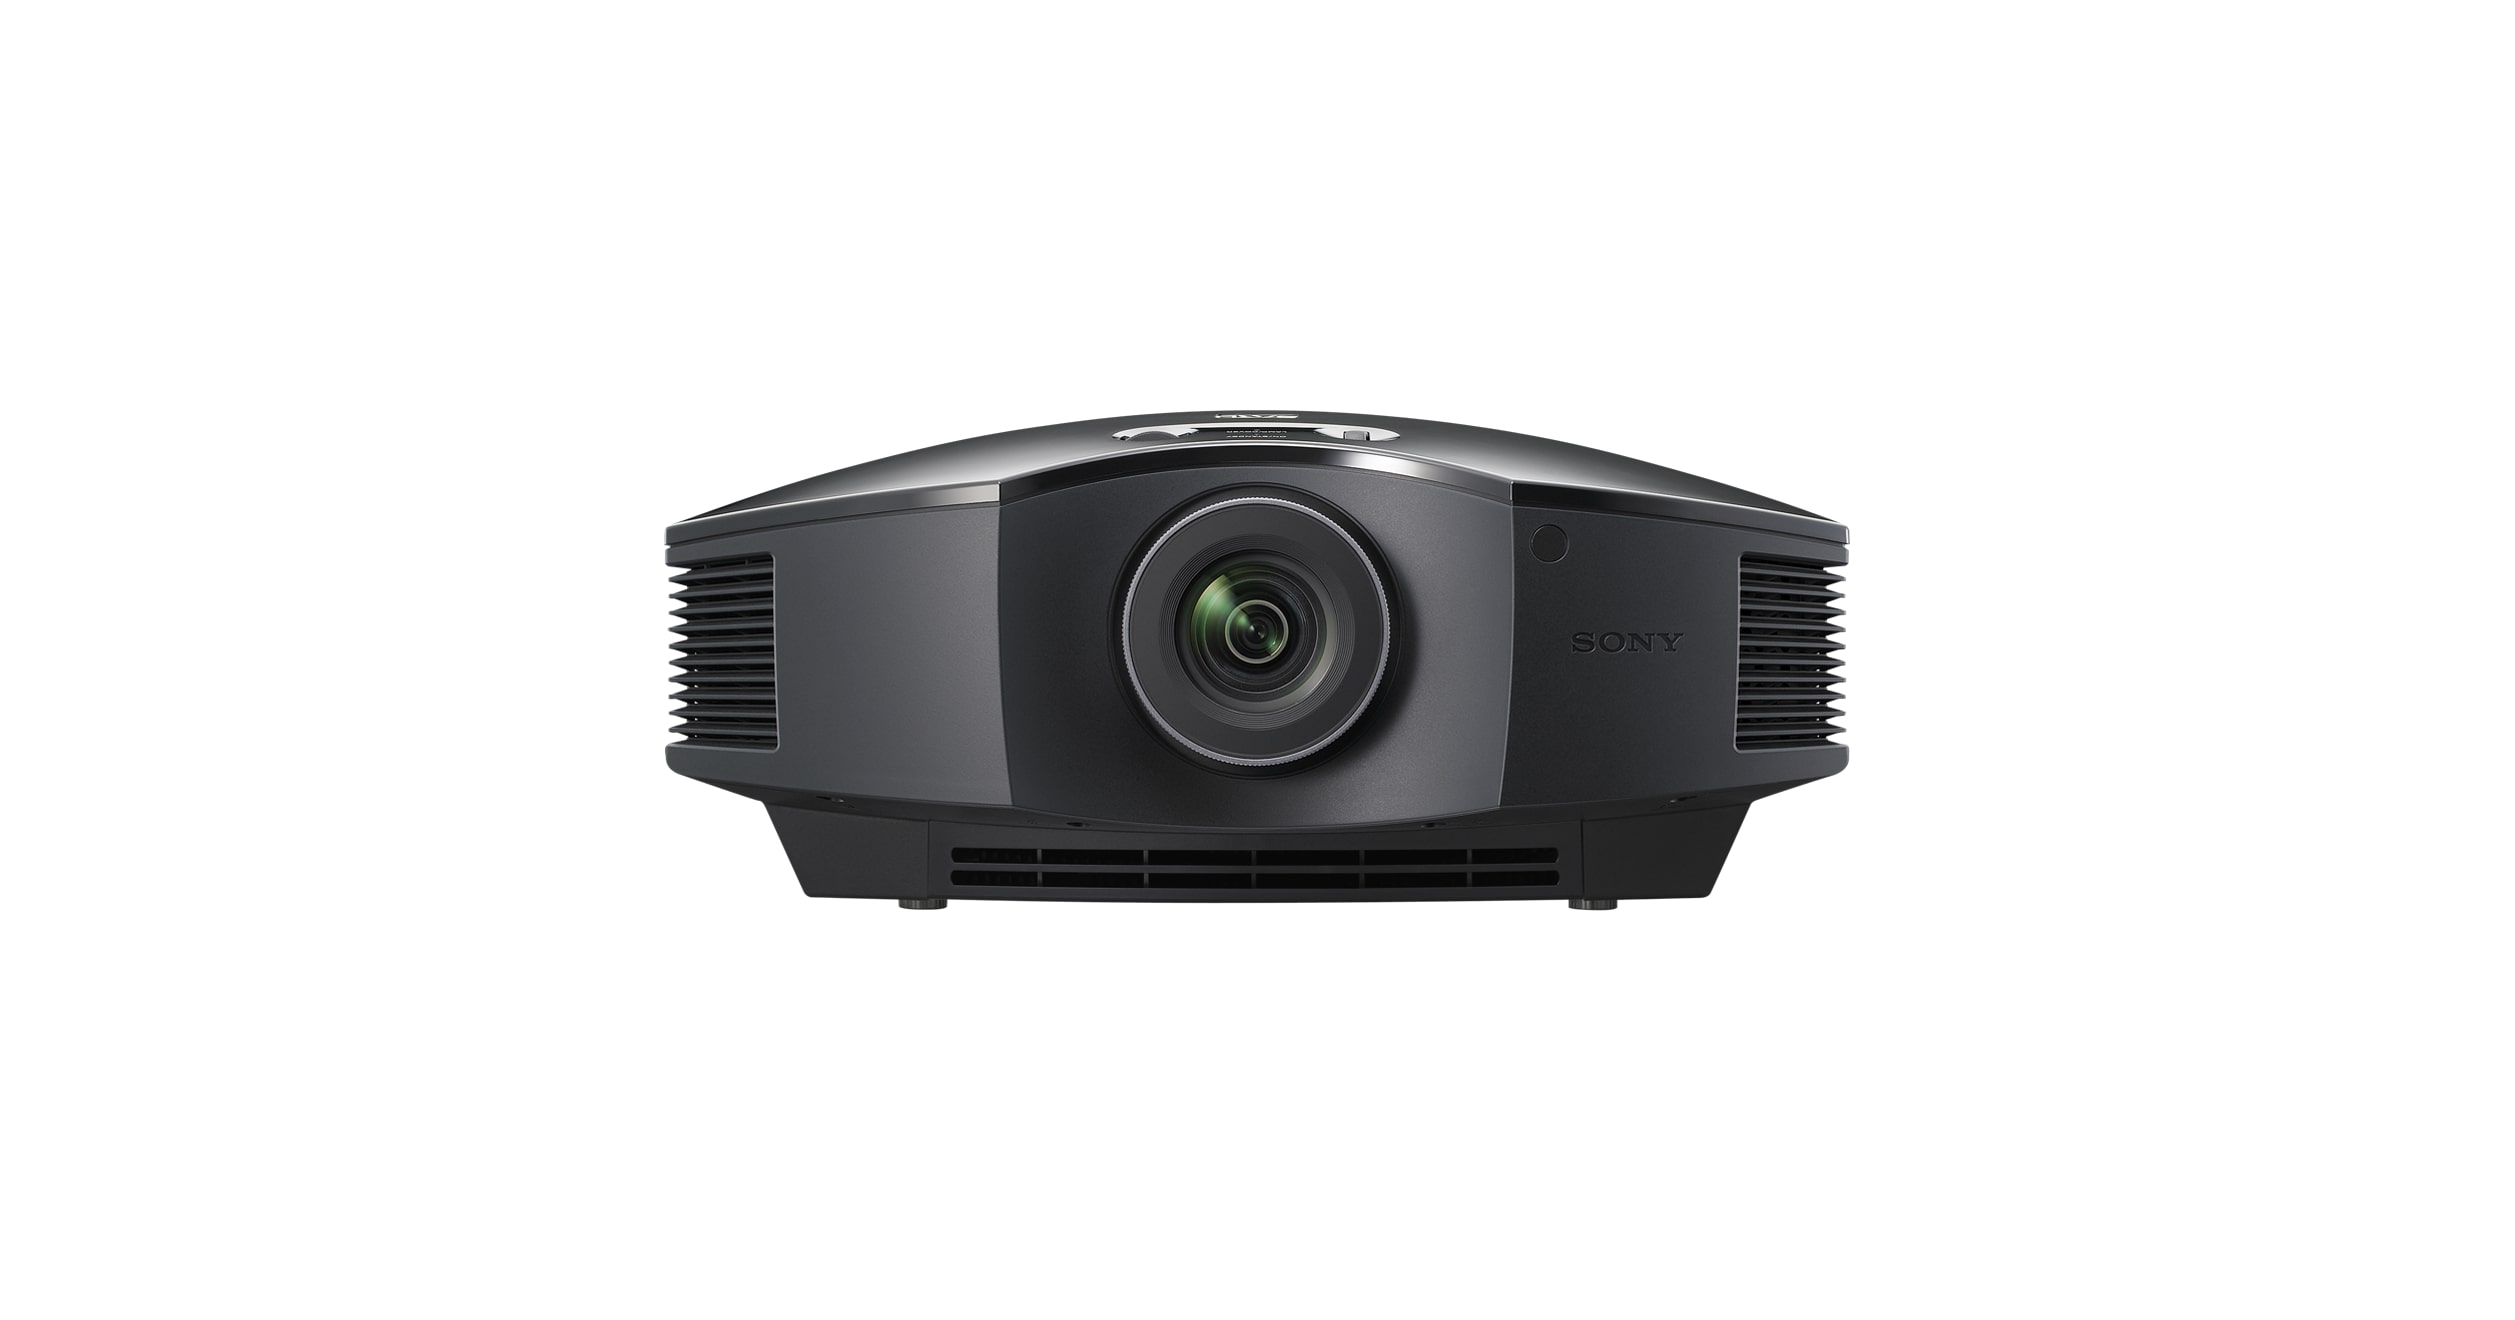 Full Hd Sxrd Home Cinema Projector Vpl Hw45es Sony Us